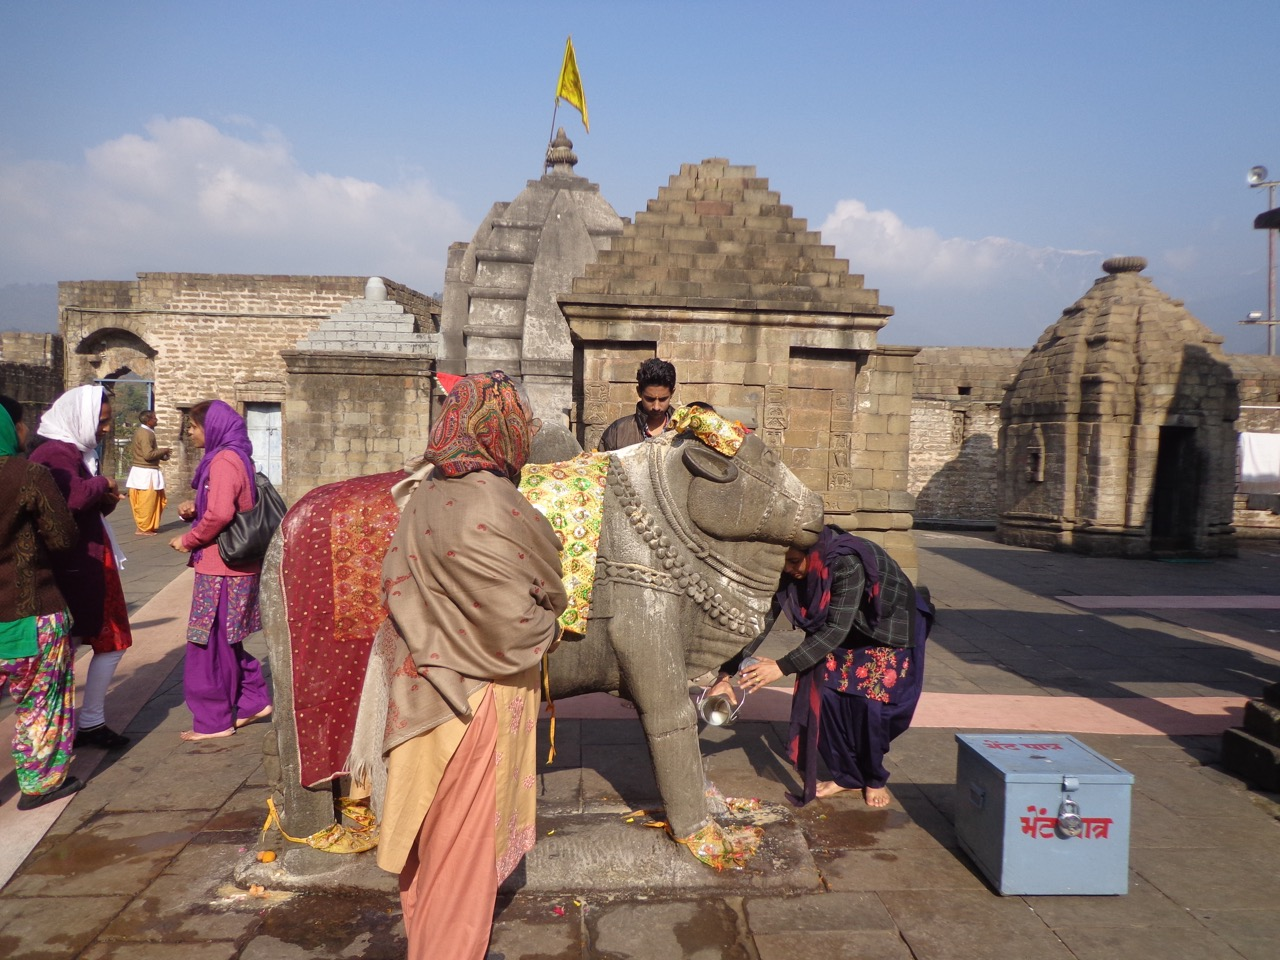 Devotees flocking to touch the bull (Nandi).